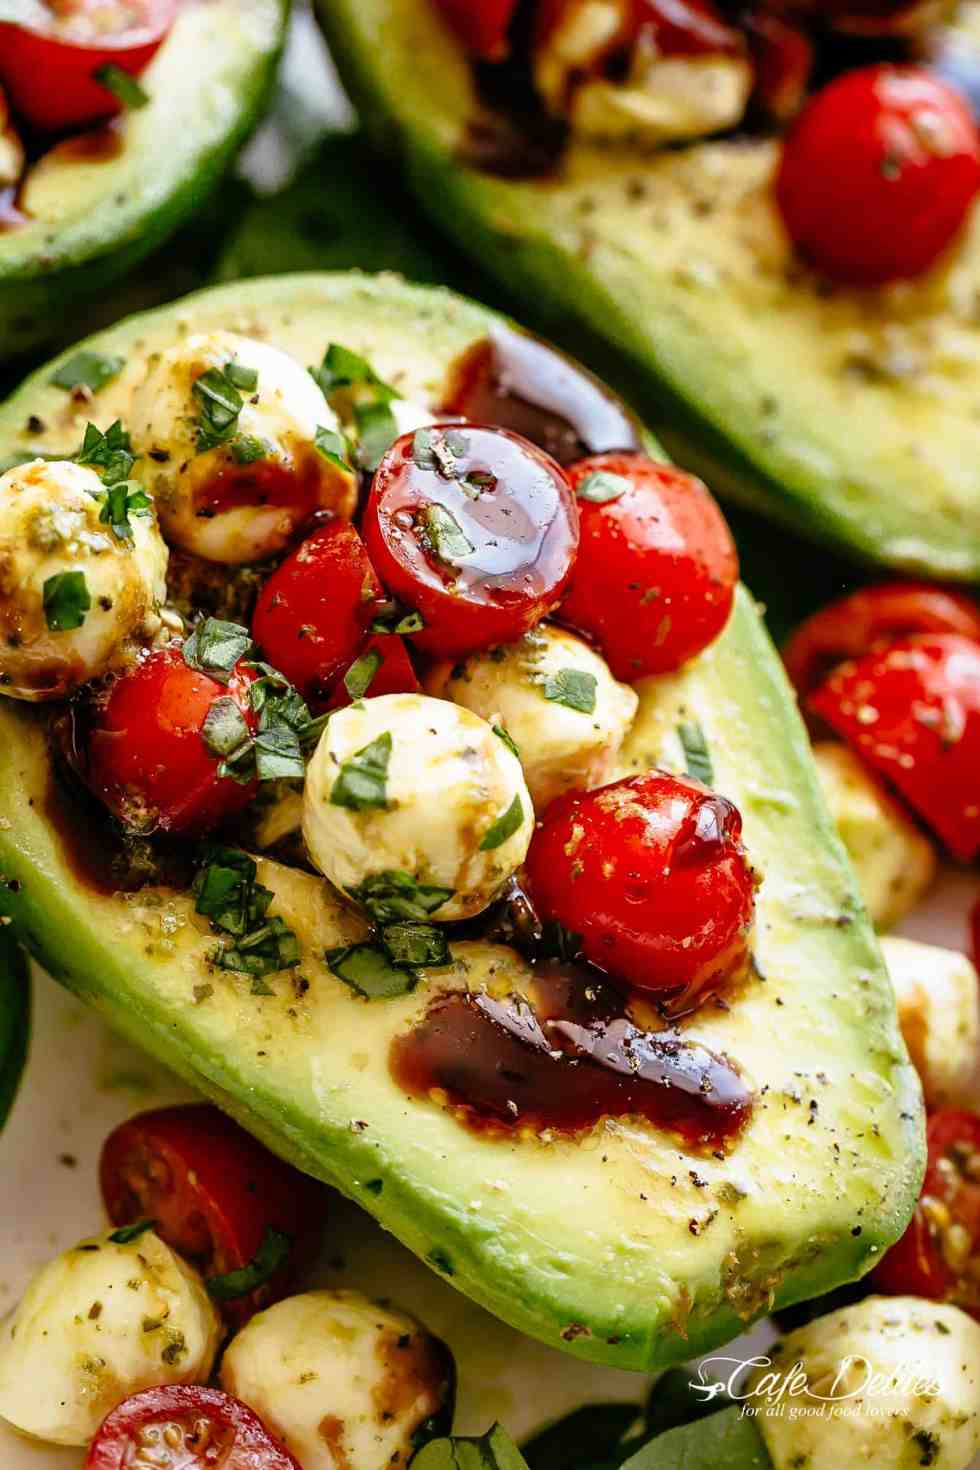 Basil Pesto Caprese Stuffed Avocado drizzled with balsamic glaze make an incredible light lunch or snack! Take creamy avocados to a different level! Sweet and juicy grape/cherry tomatoes with fresh mozzarella balls are tossed through basil pesto and spooned into avocado halves! | cafedelites.com